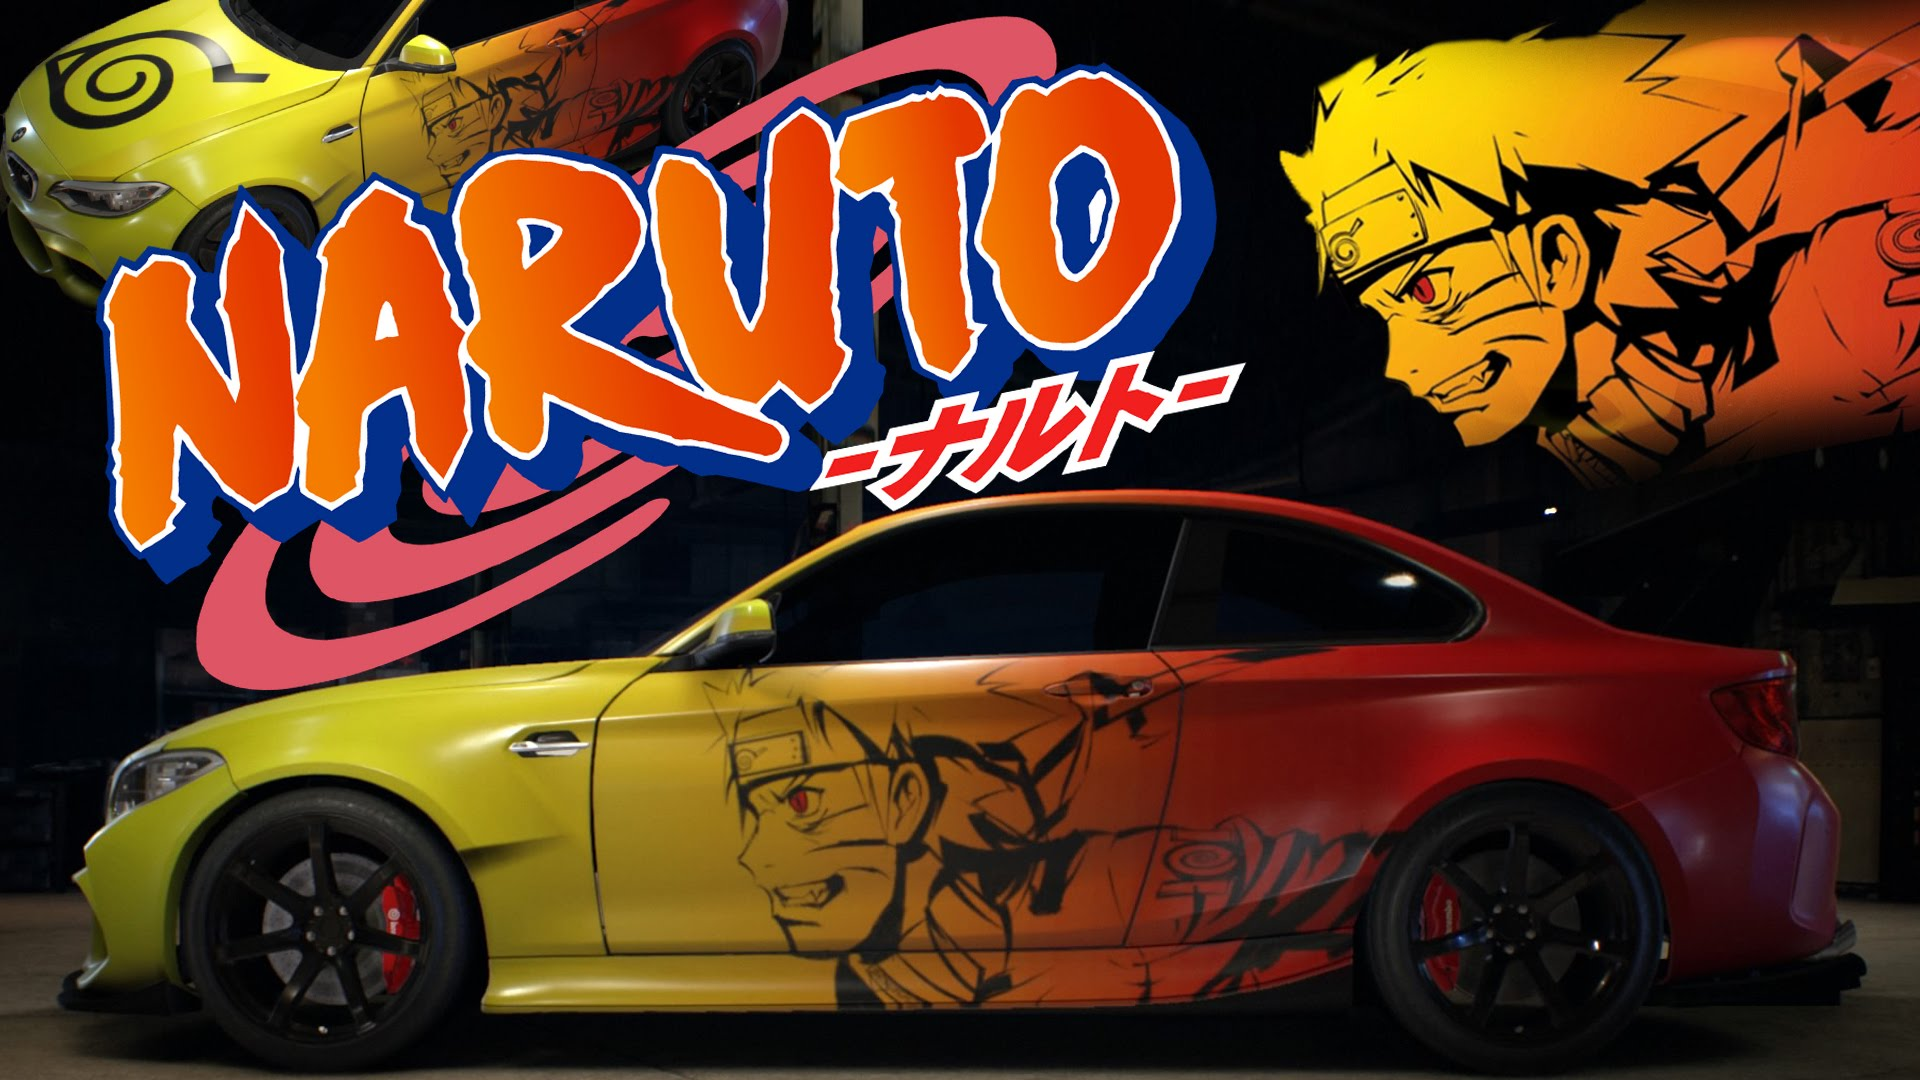 Anime vehicle wrap custom stickers